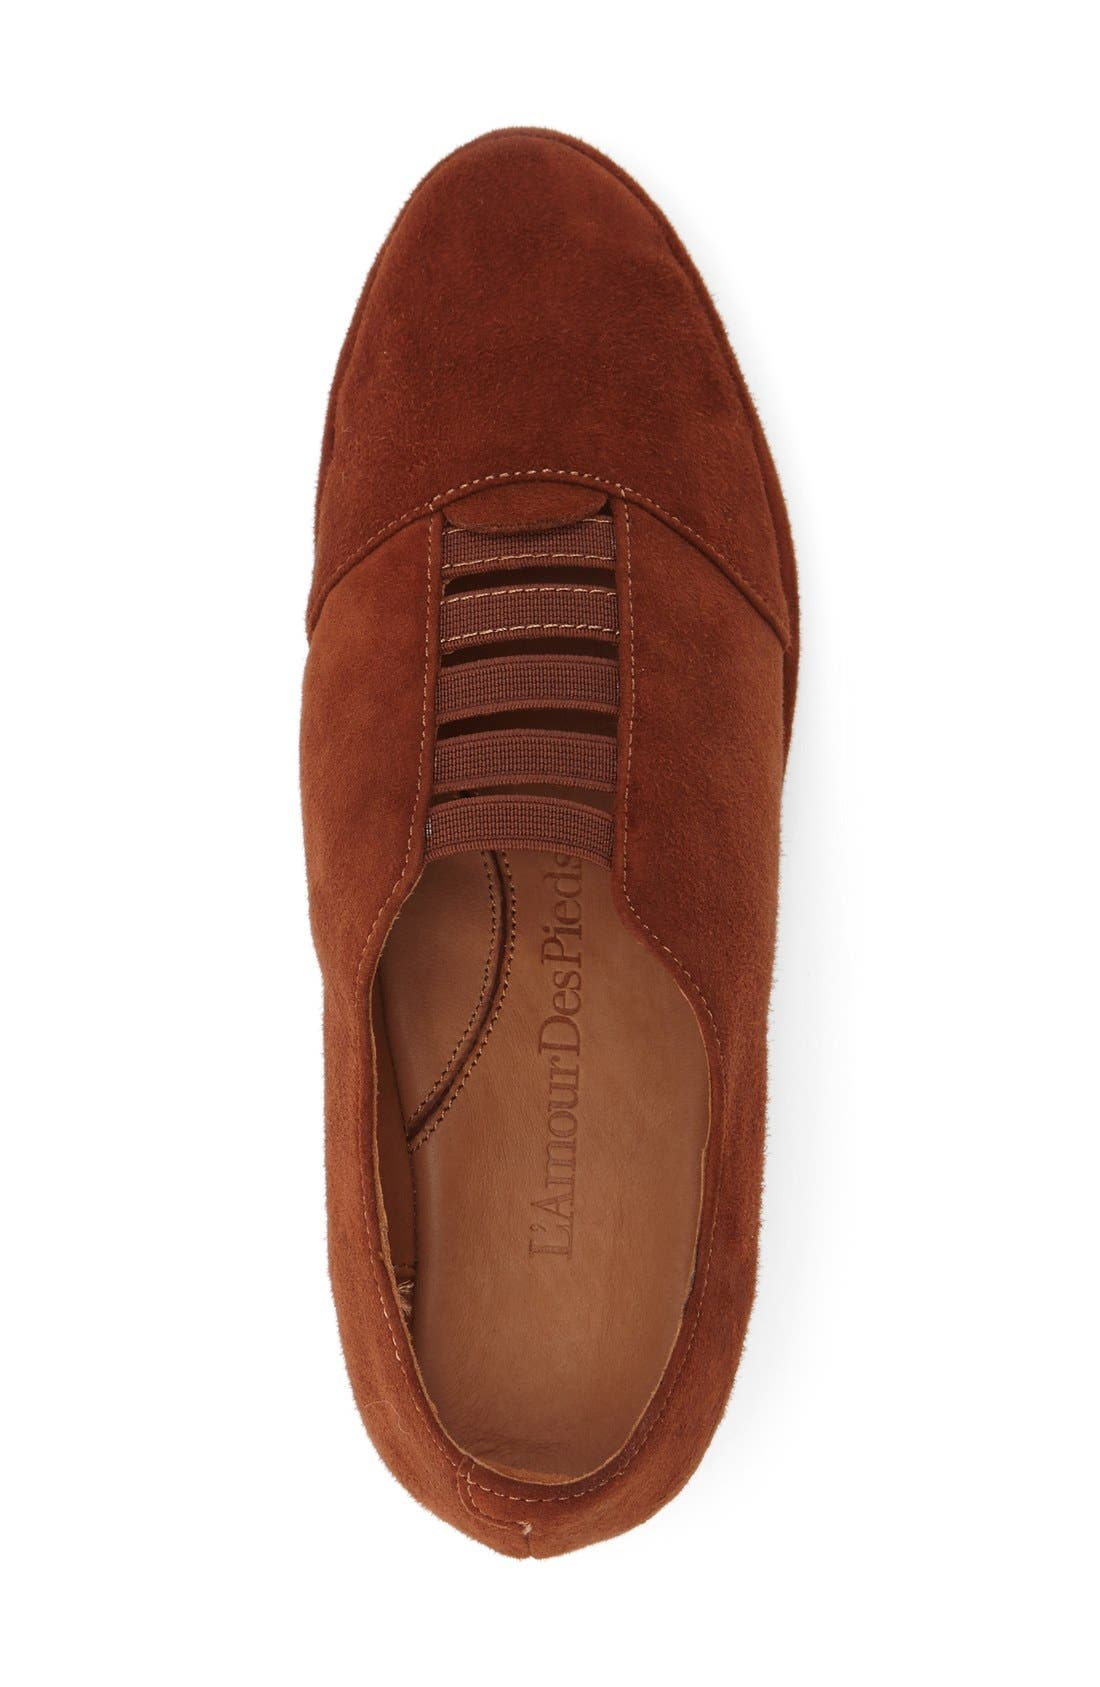 'Beziers' Slip-On,                             Alternate thumbnail 3, color,                             BRANDY SUEDE LEATHER